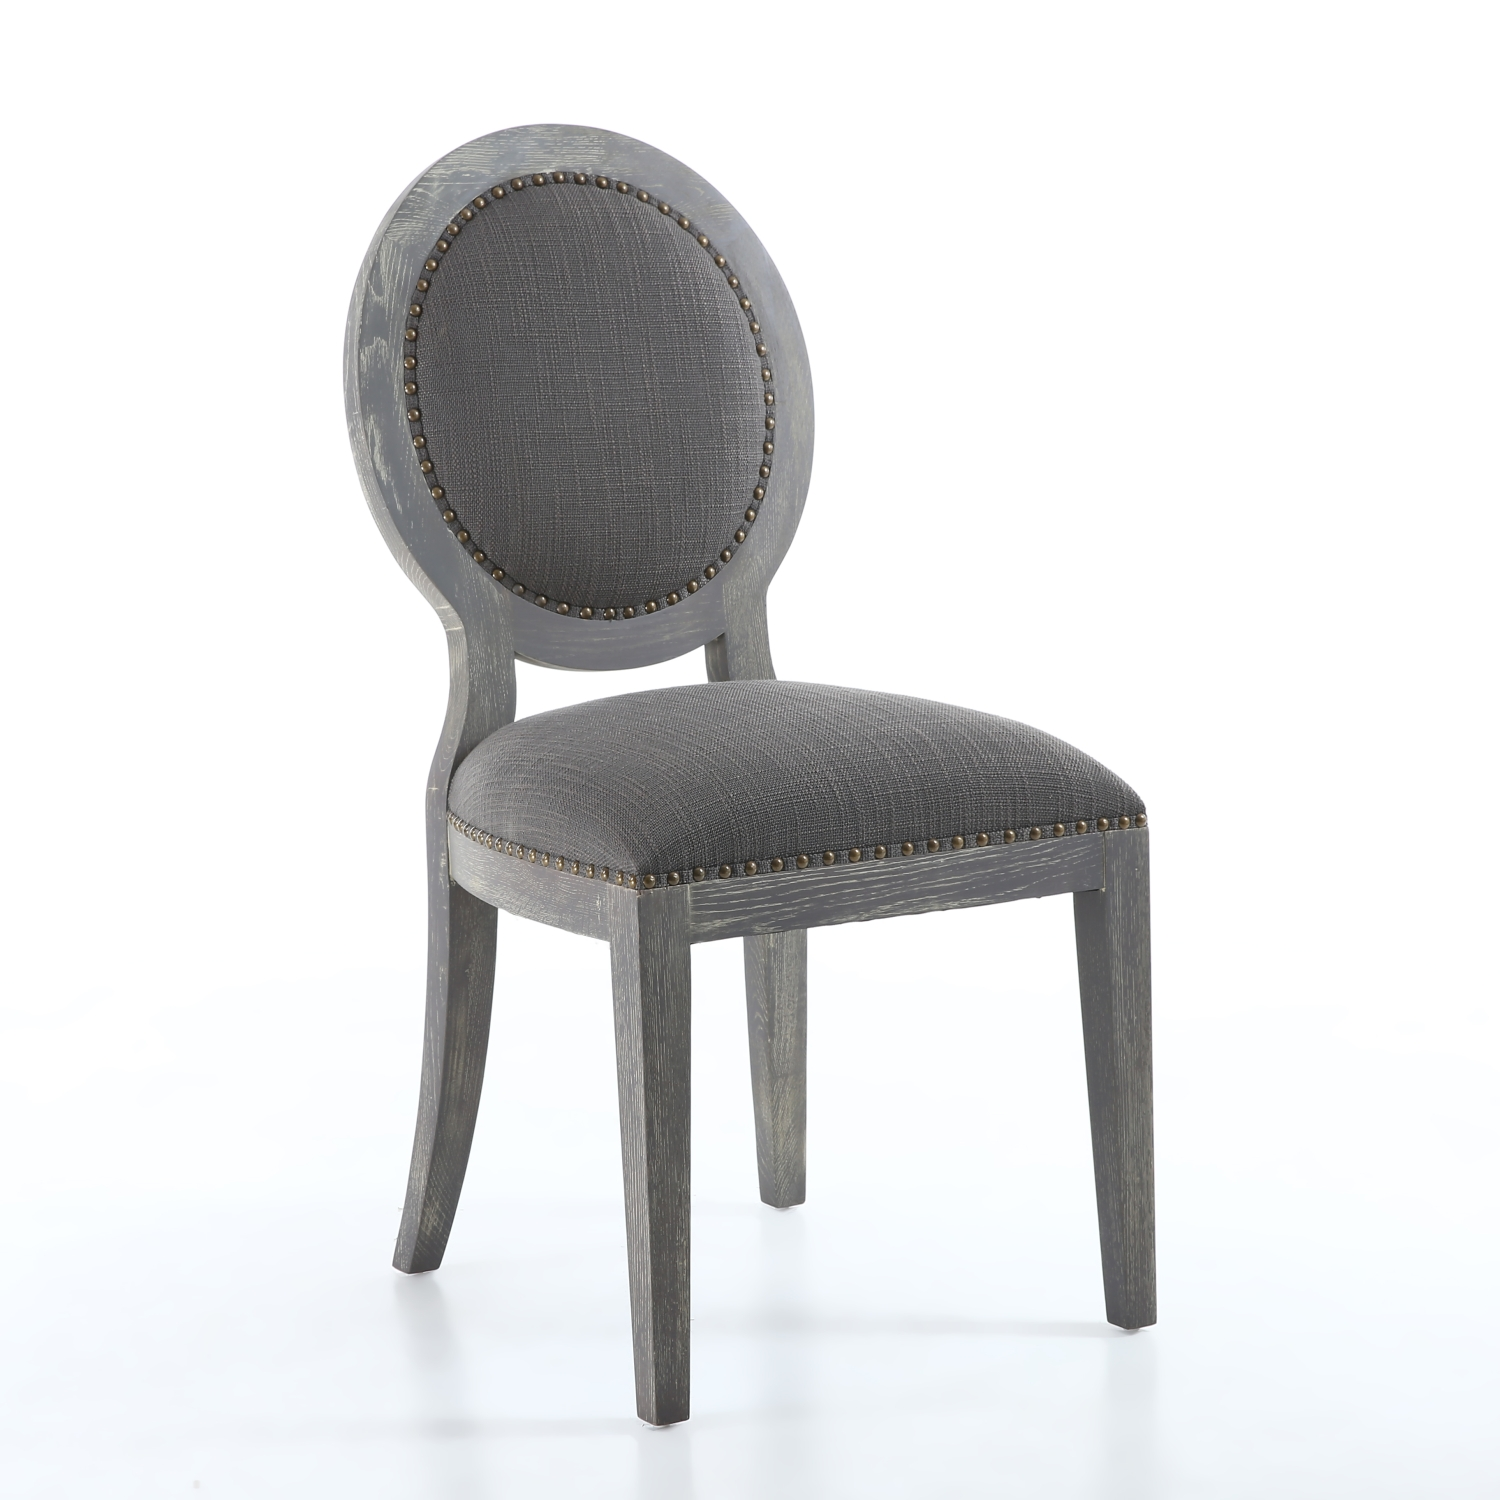 x manor antique grey dining chairs  brass studs grey washed solid oaklegs. x manor antique grey dining chairs  brass studs grey washed